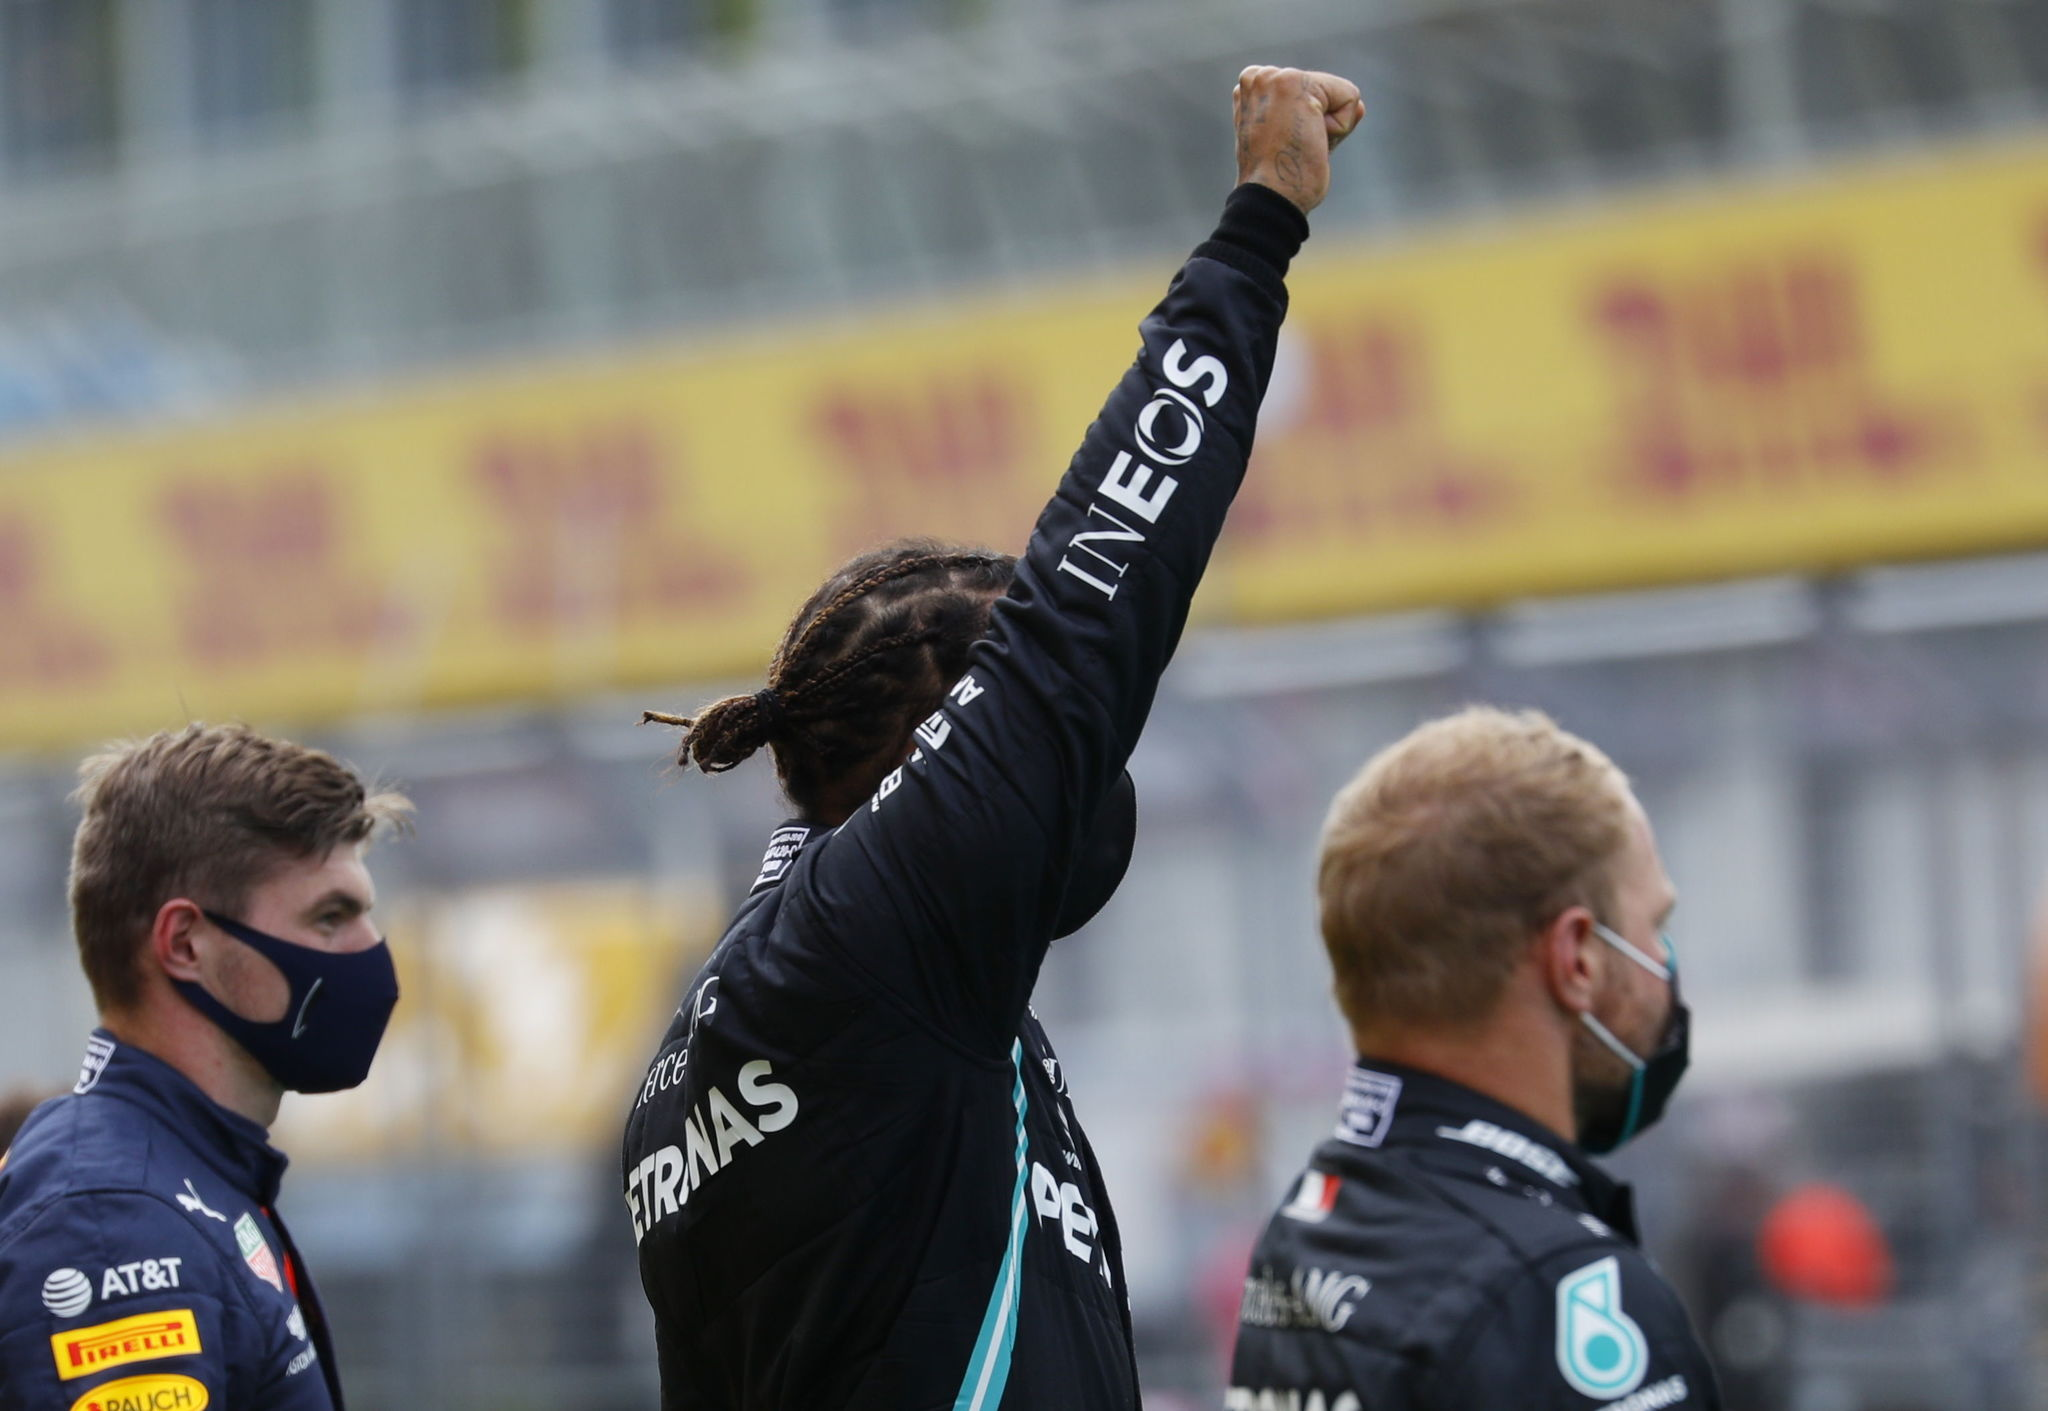 Spielberg (Austria), 12/07/2020.- A handout photo made available by the FIA shows British Formula One driver lt;HIT gt;Lewis lt;/HIT gt; lt;HIT gt;Hamilton lt;/HIT gt; (C) of Mercedes AMG GP celebrates on the podium after winning the Formula One Grand Prix of Styria in Spielberg, Austria, 12 July 2020, with second placed Mercedes Valtteri Bottas and third placed Red Bulls Max Verstappen (Fórmula Uno) EFE/EPA/FIA/F1 HANDOUT SHUTTERSTOCK OUT HANDOUT EDITORIAL USE ONLY/NO SALES *** Local Caption *** SPIELBERG, AUSTRIA - JULY 09: Daniel Ricciardo of Australia and Renault Sport F1 and Esteban Ocon of France and Renault Sport F1 talk in the Drivers Press Conference during previews for the F1 Grand Prix of Styria at Red Bull Ring on July 09, 2020 in Spielberg, Austria. (Photo by Bryn Lennon/Getty Images)